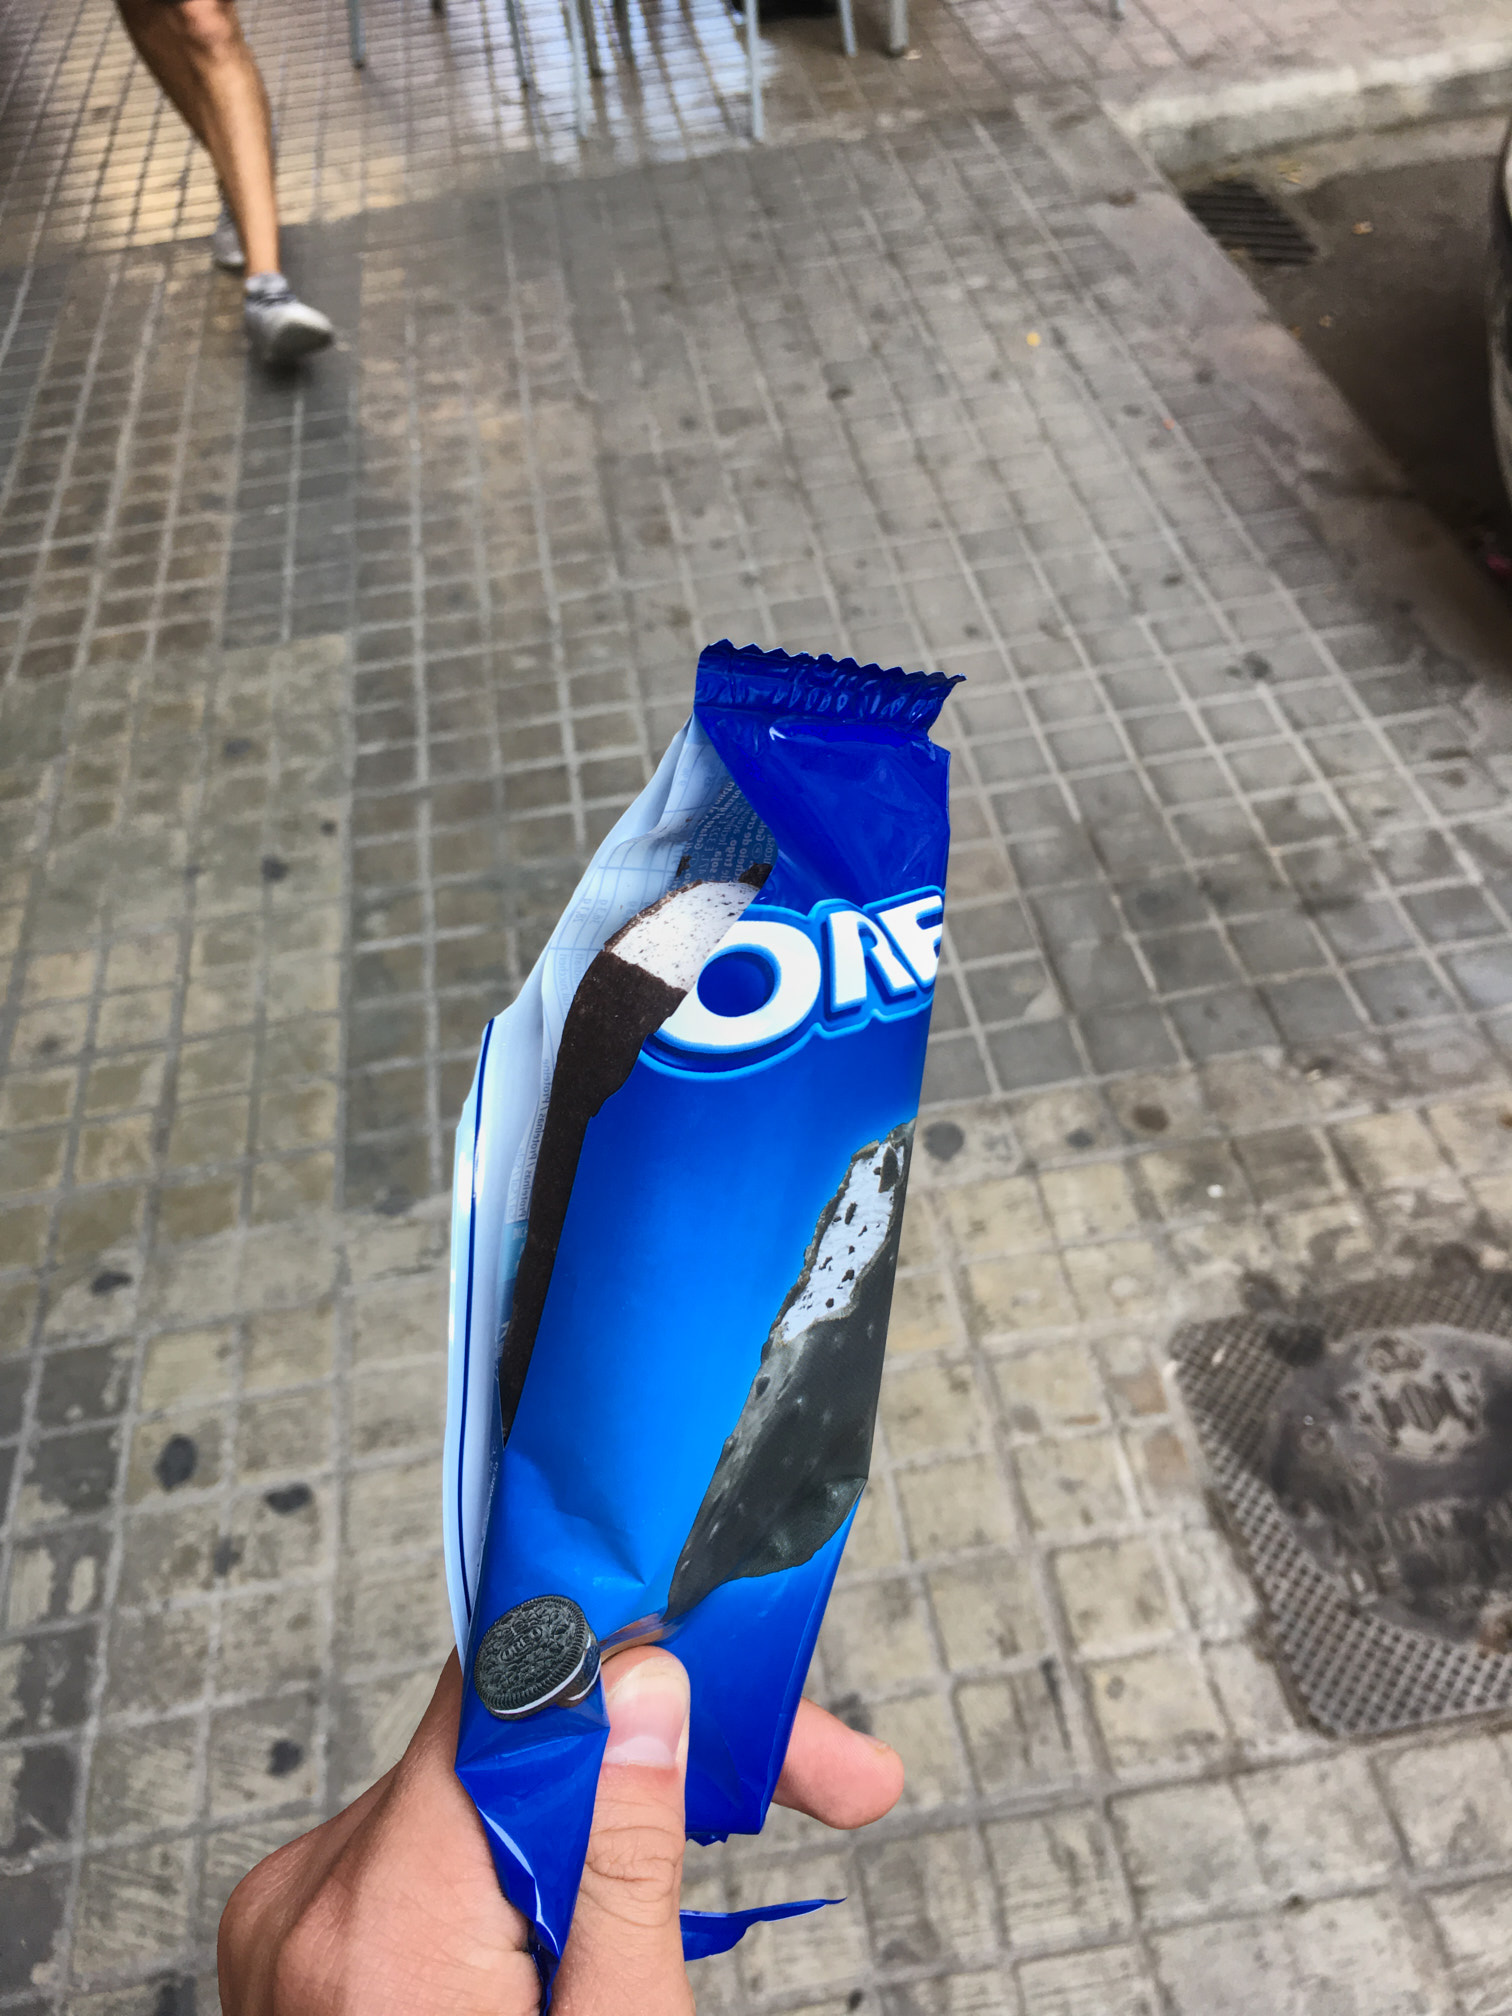 The Oreo version of Magnum